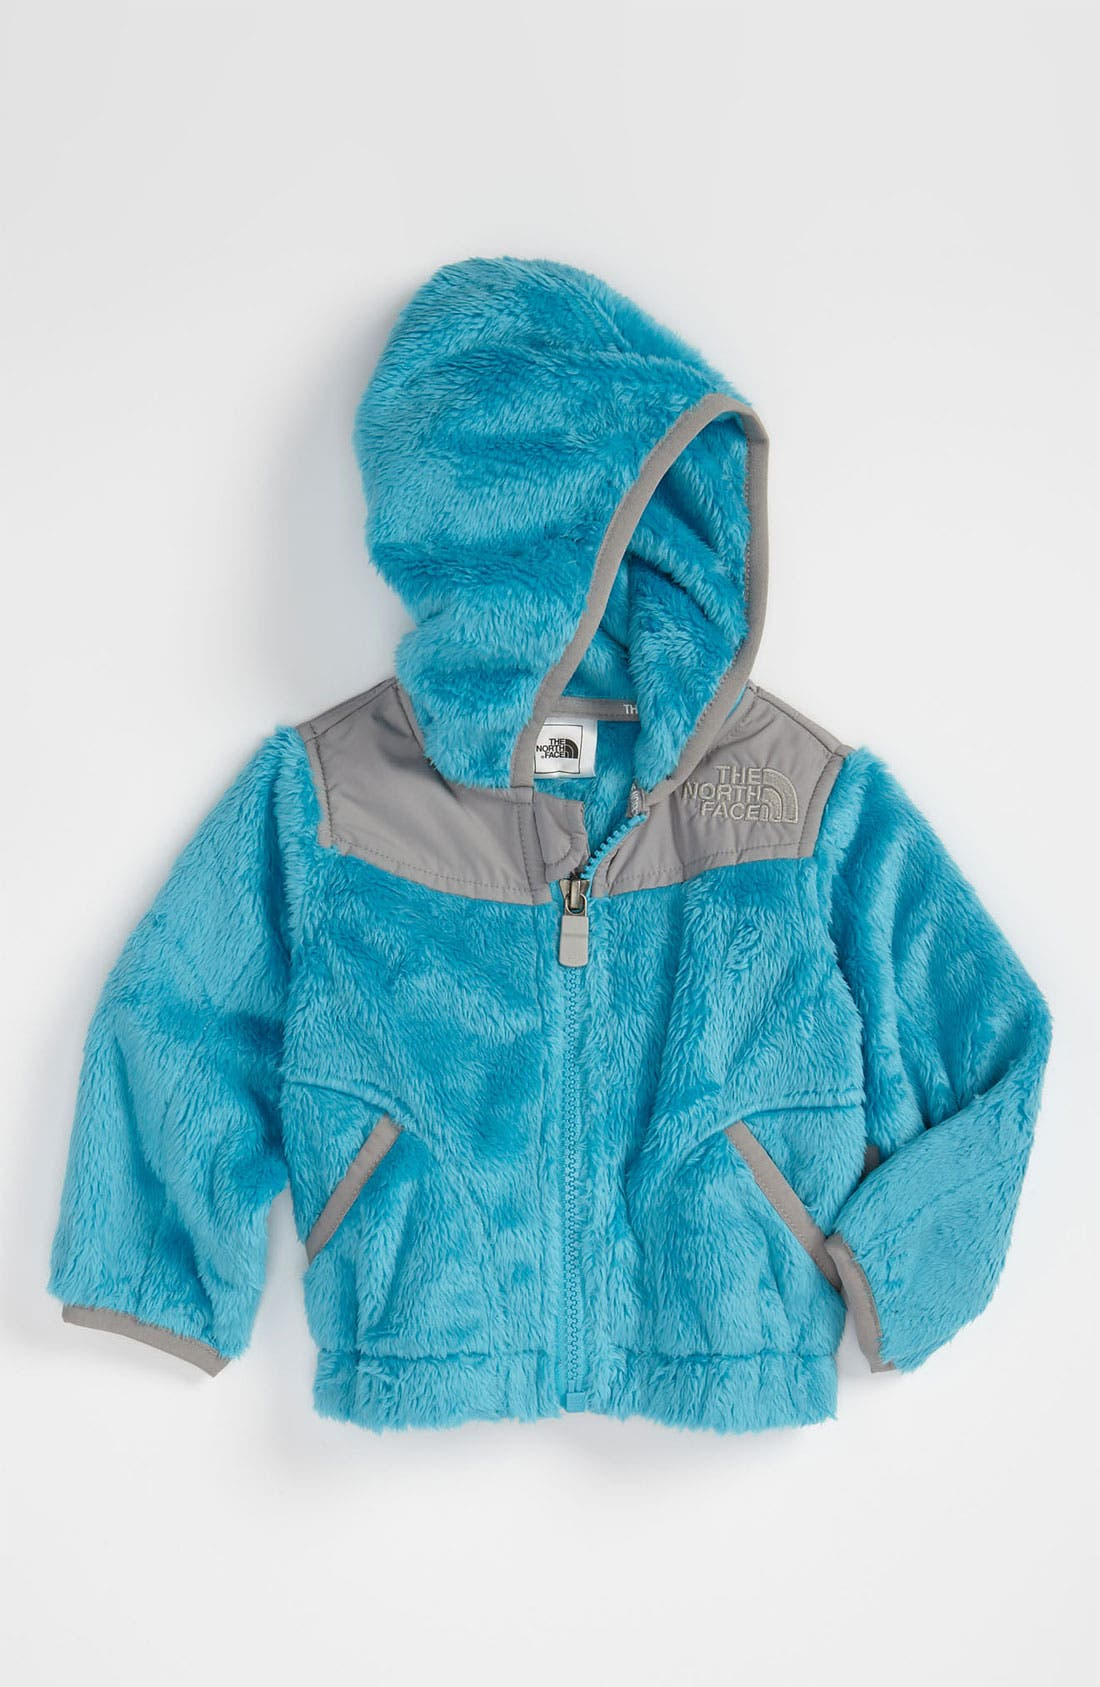 Main Image - The North Face 'Oso' Hoodie (Toddler)